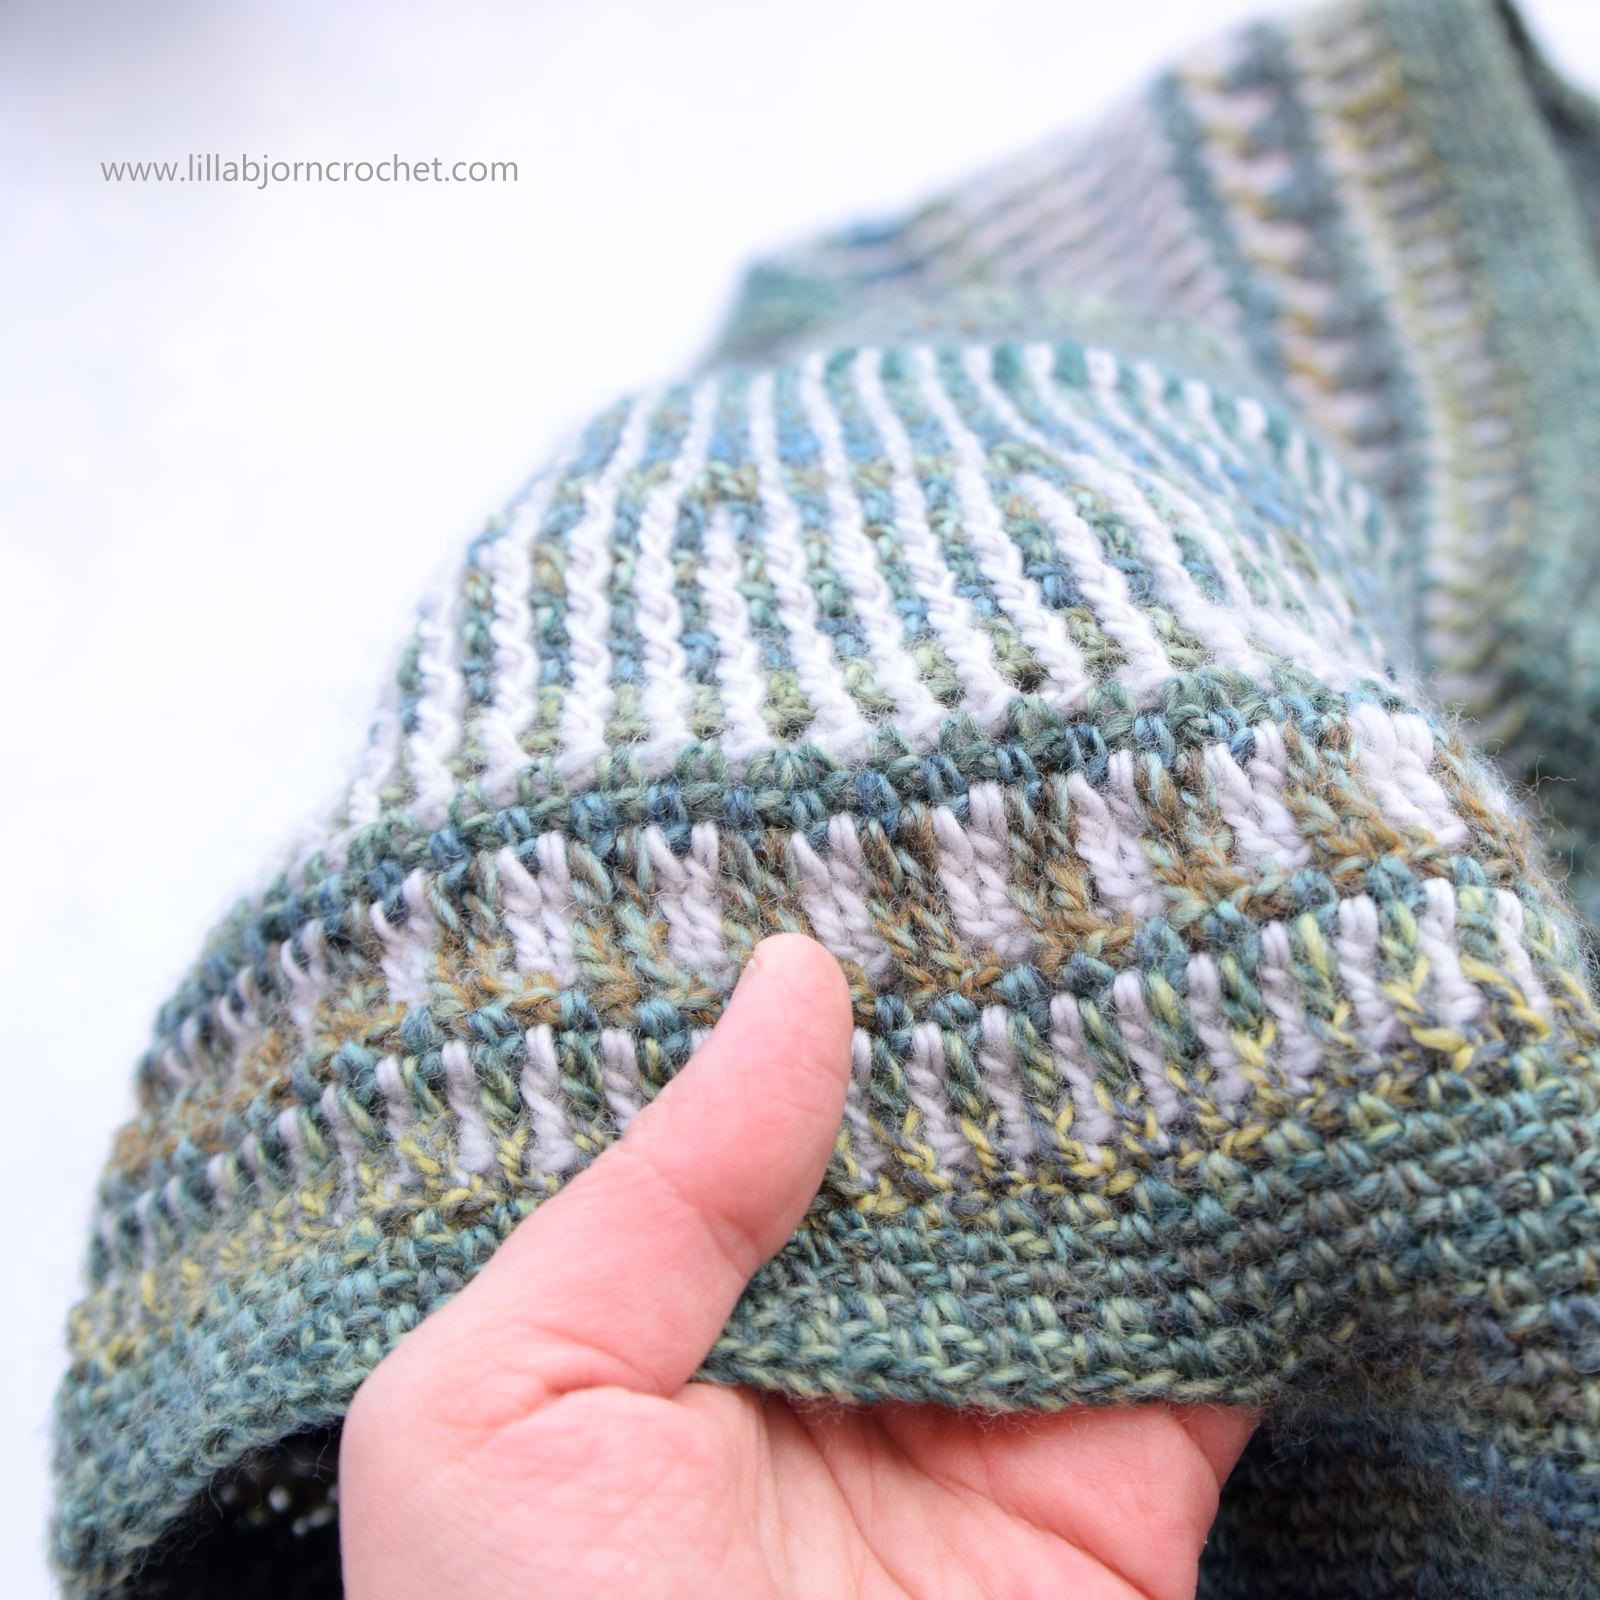 Schemes and description of knitting colors of the original and unusual shape with their own hands crocheted